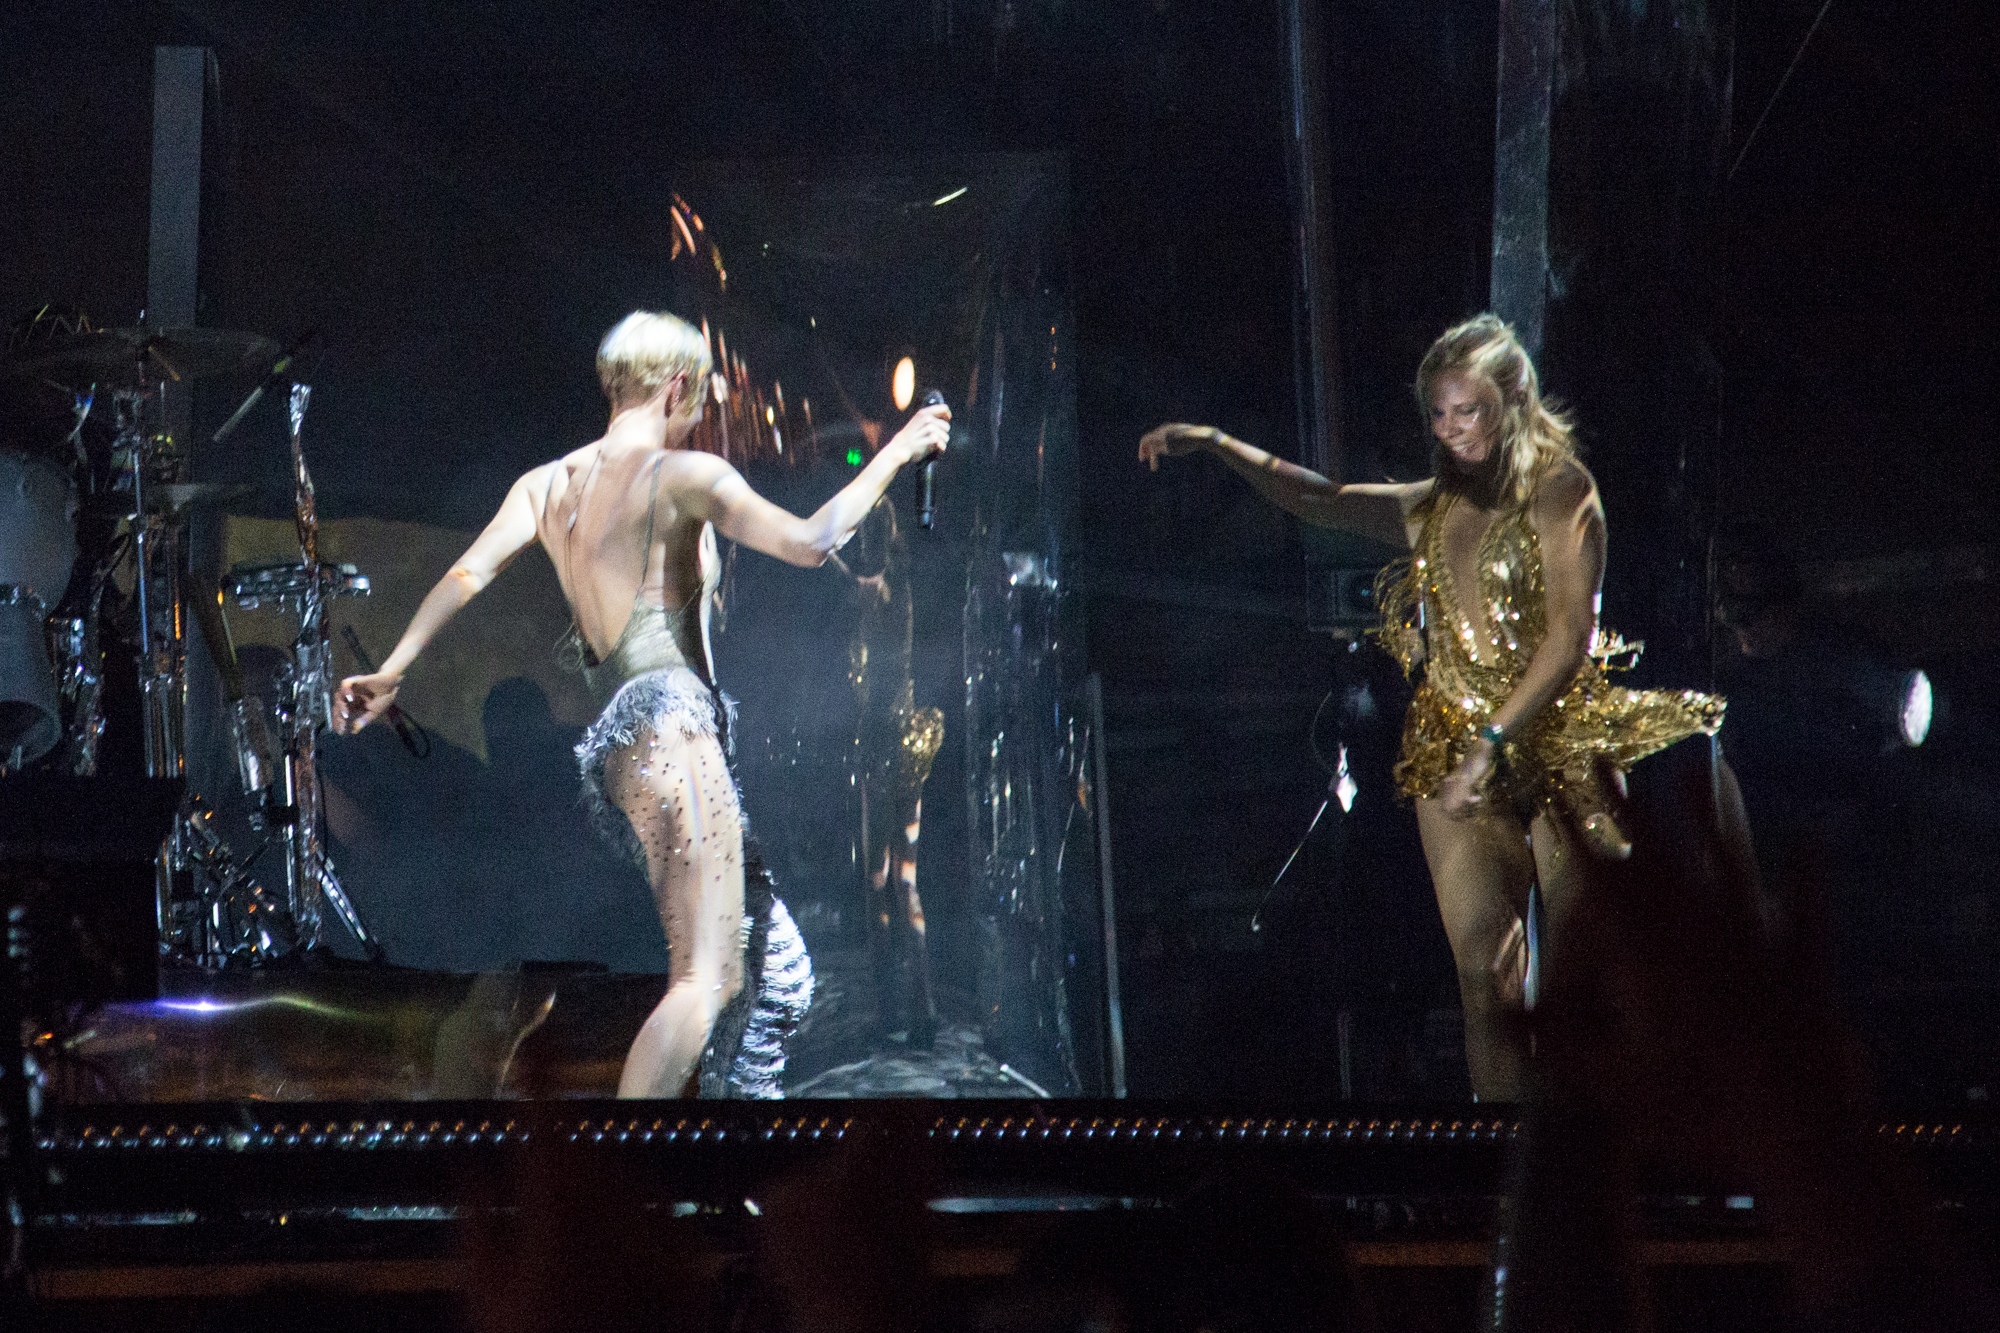 Robyn's remixed set at Gov Ball